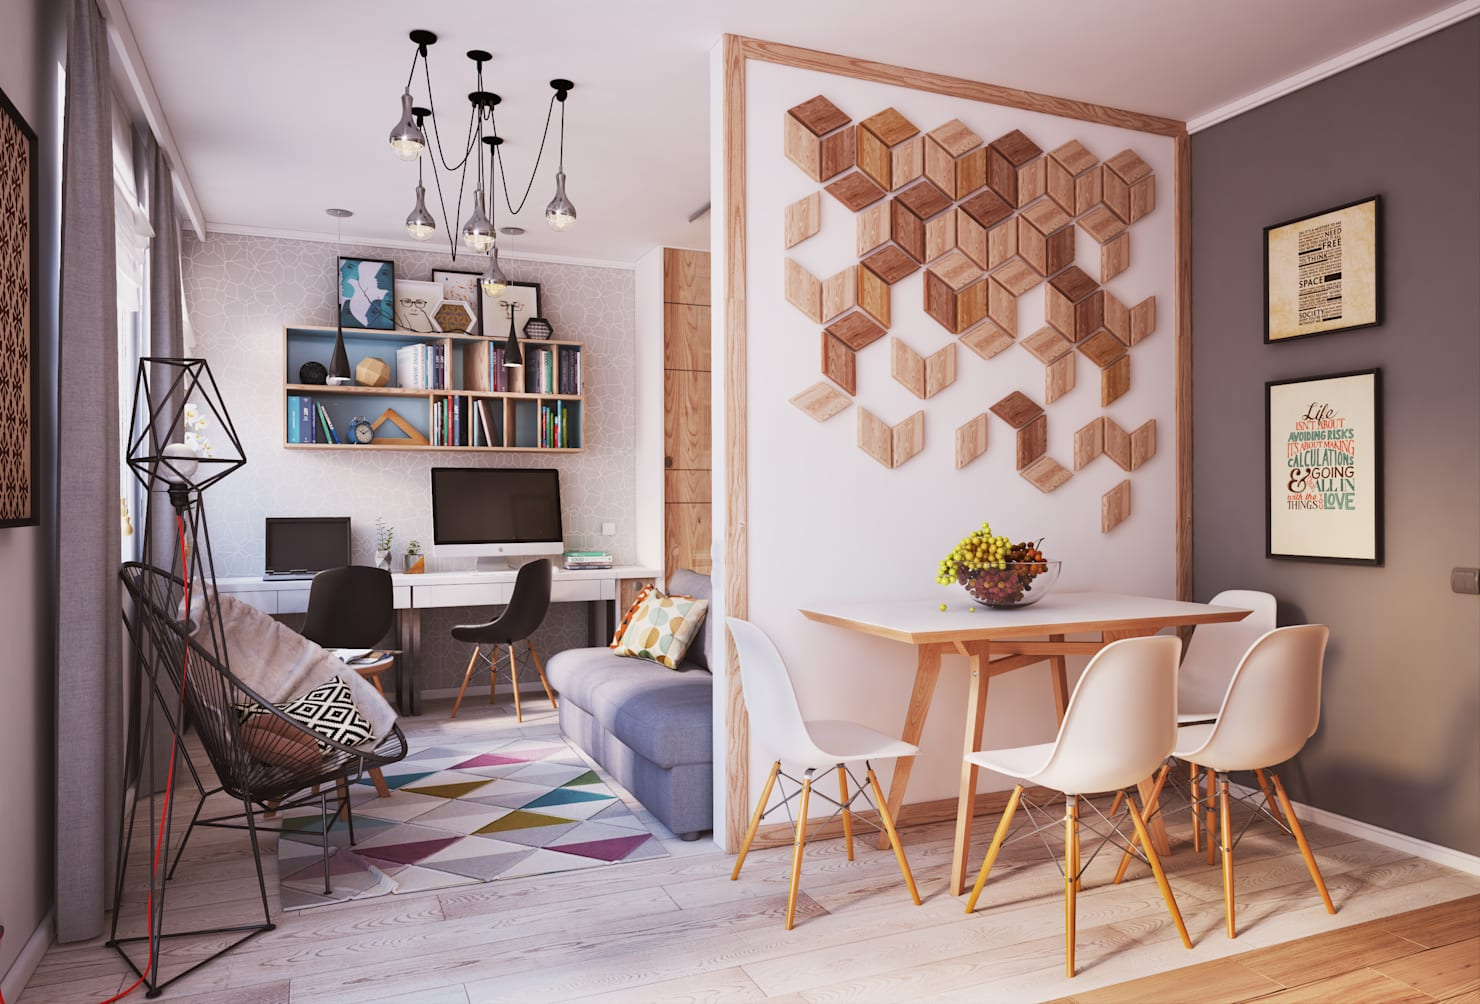 10 Of The Best One-Room Apartments